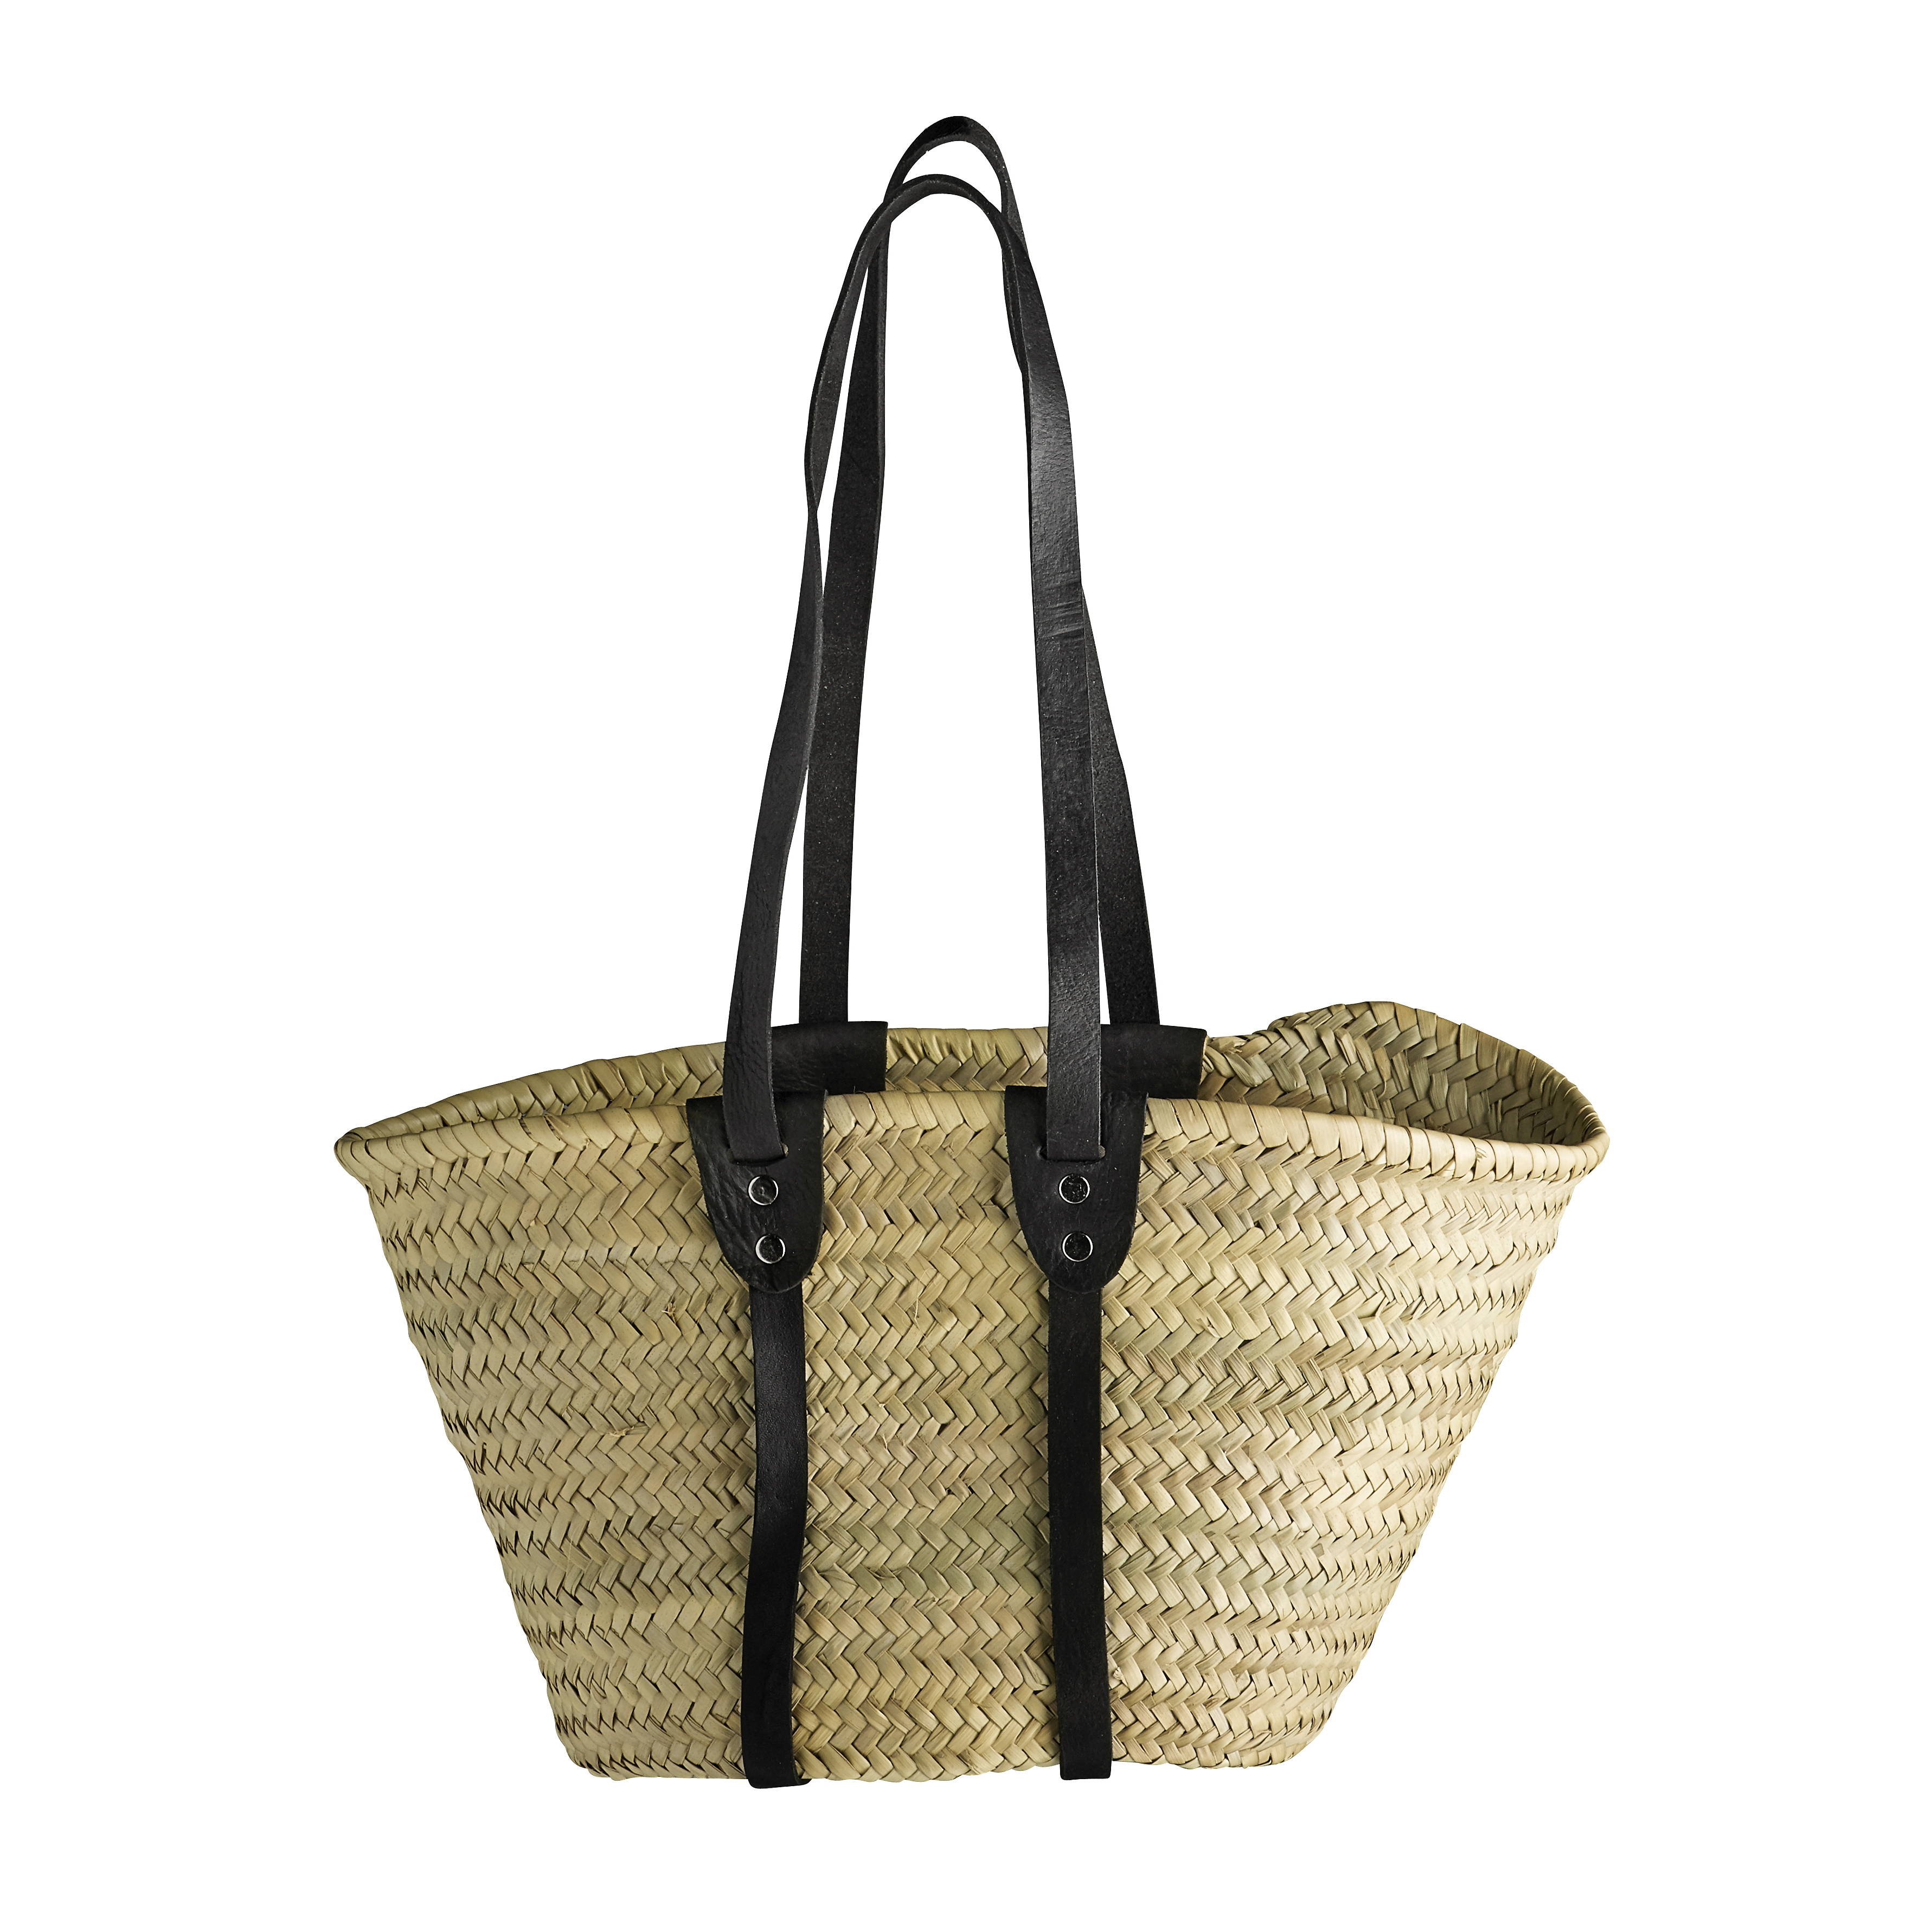 Hand Bag In Straw With Long Leather Handles Black Products Tine